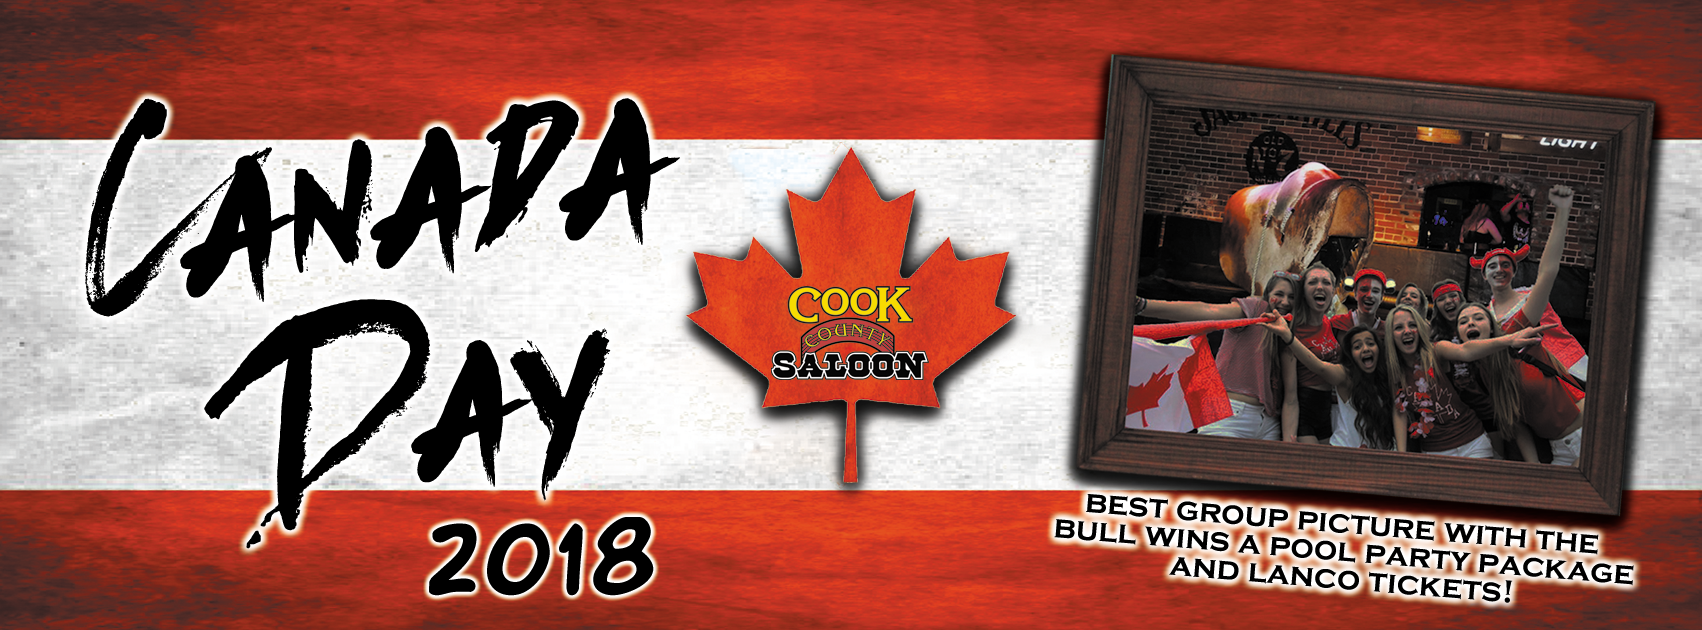 canada day 2018.png